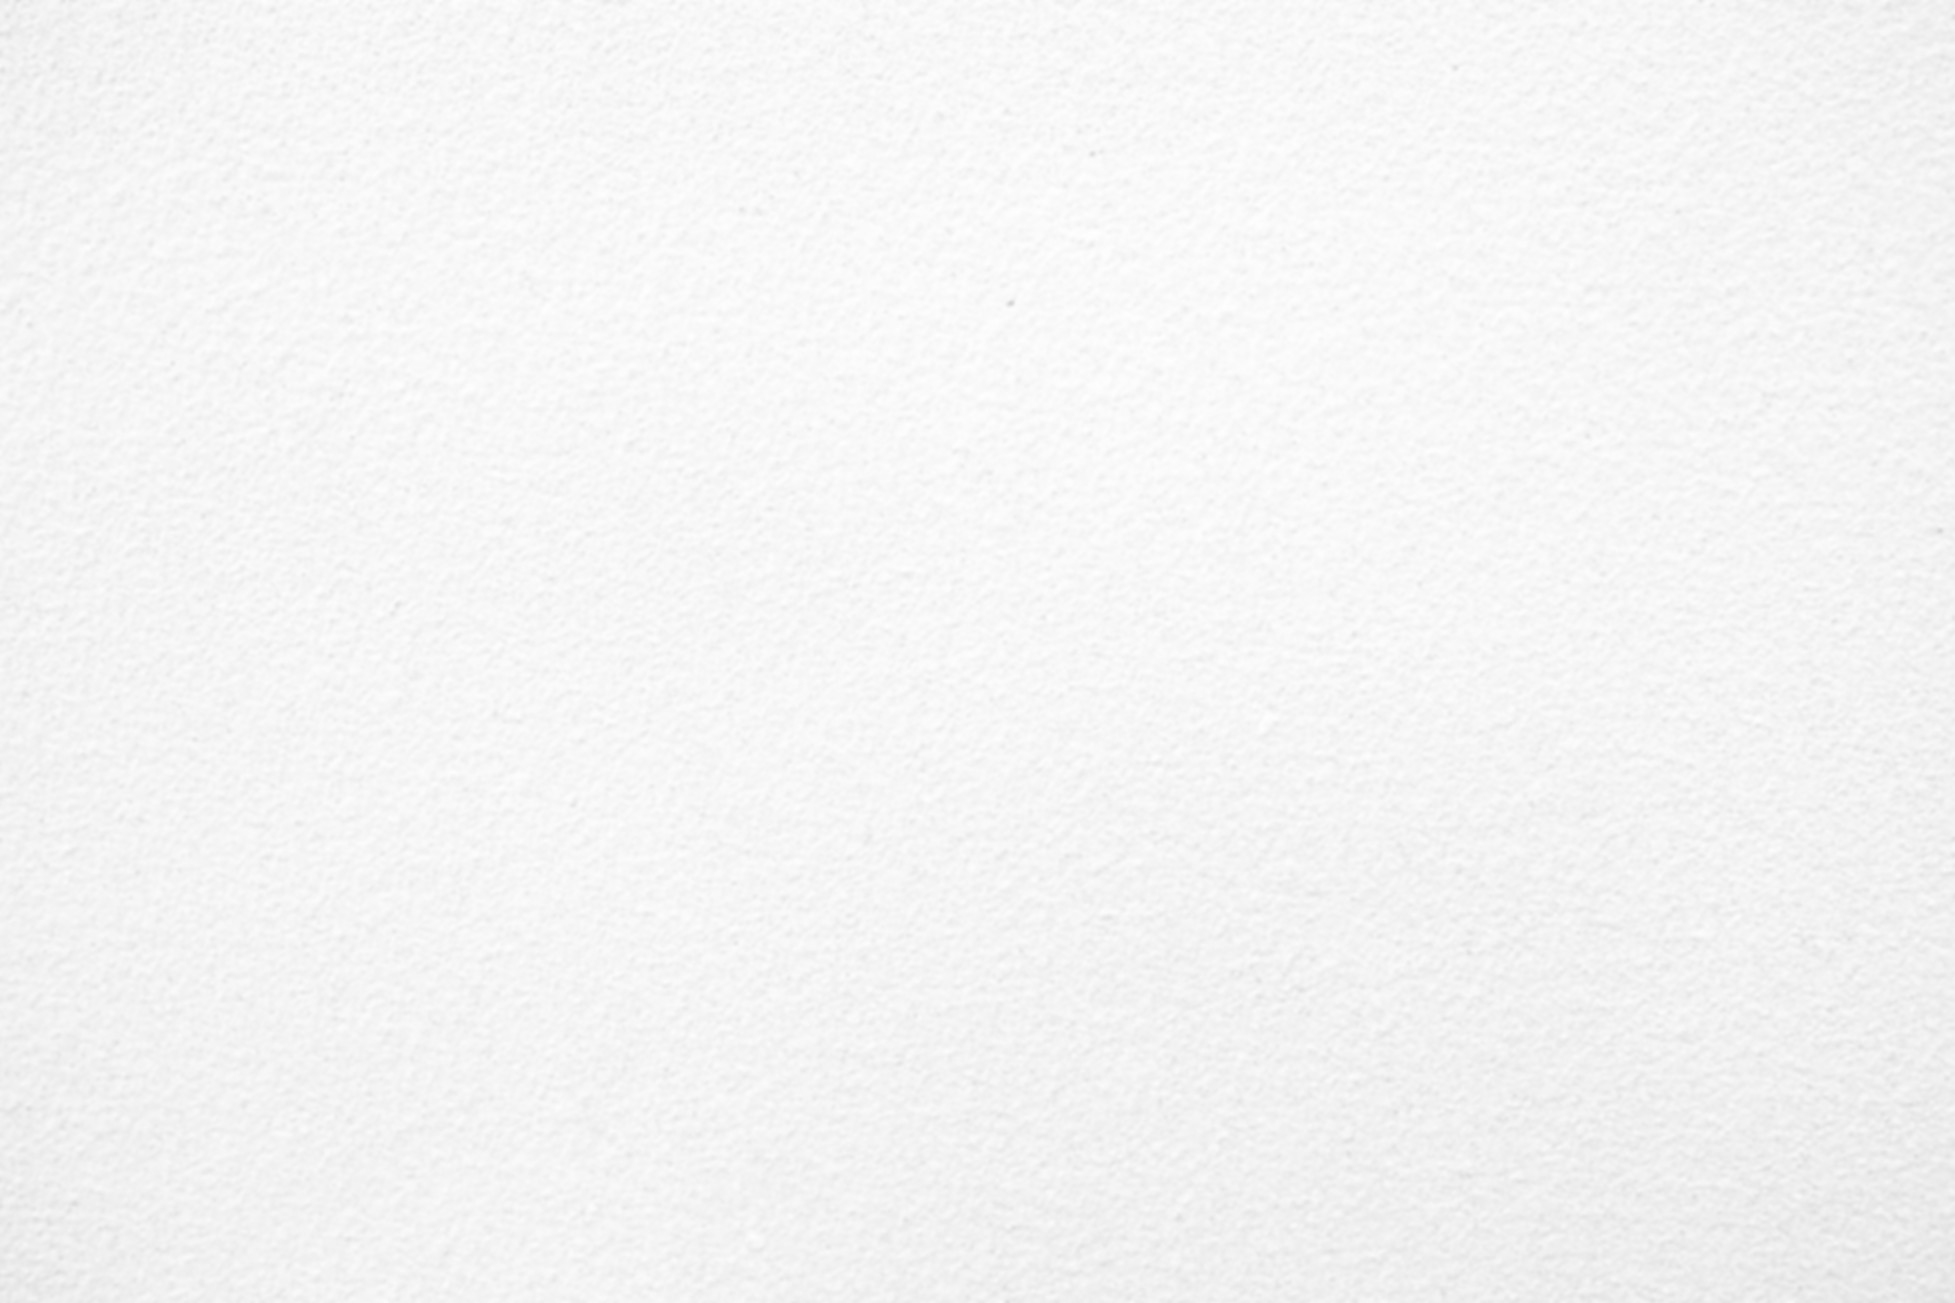 White Concrete Wall Texture Background,